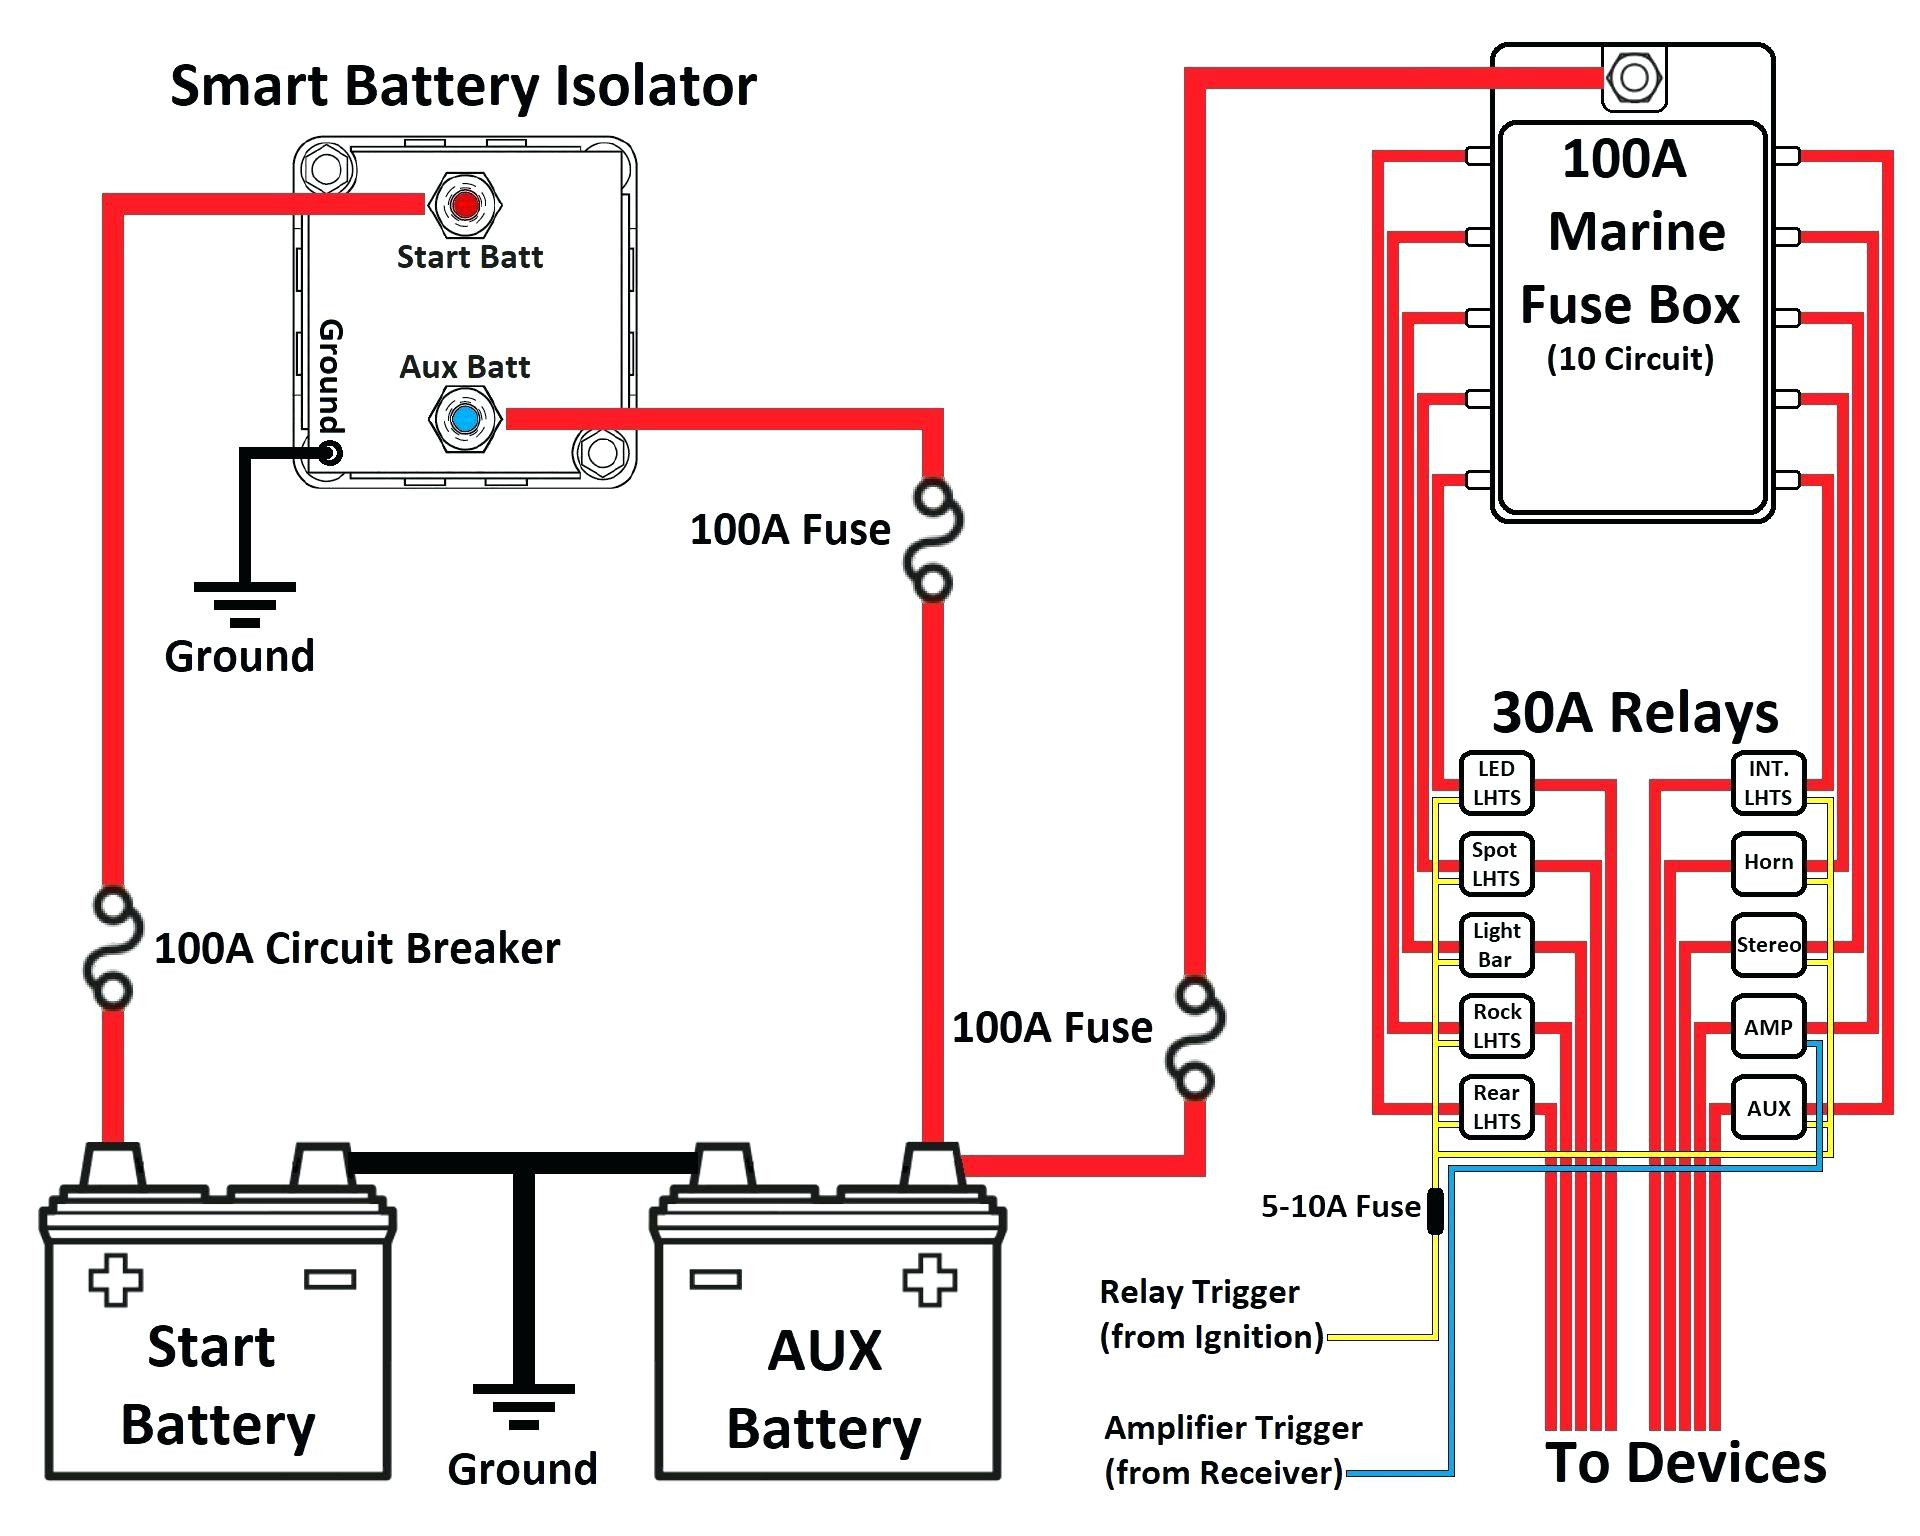 true battery isolator wiring diagram collection wiring diagram sample boat light wiring diagram true battery isolator wiring diagram download dual battery isolator wiring diagram collection boat dual battery download wiring diagram